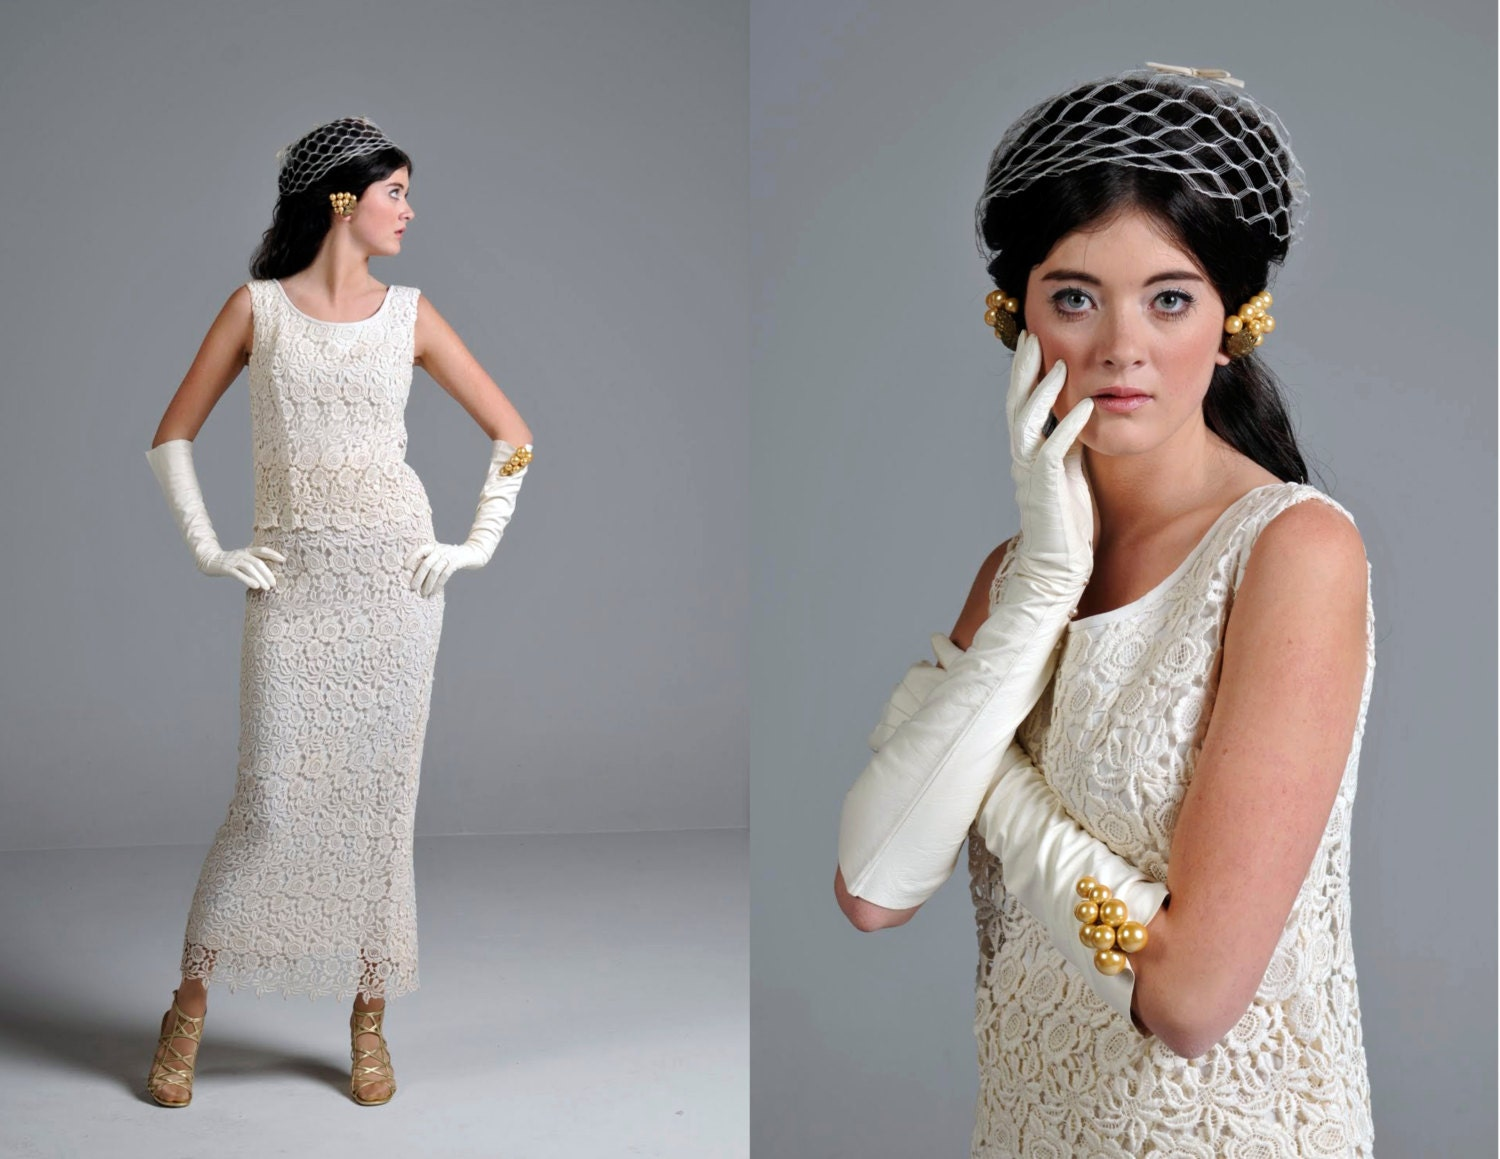 Ivory Crepe Open Back Wedding Dress And Handmade: Vintage 50s Dress // 1950s Ivory Lace Column Gown // Small